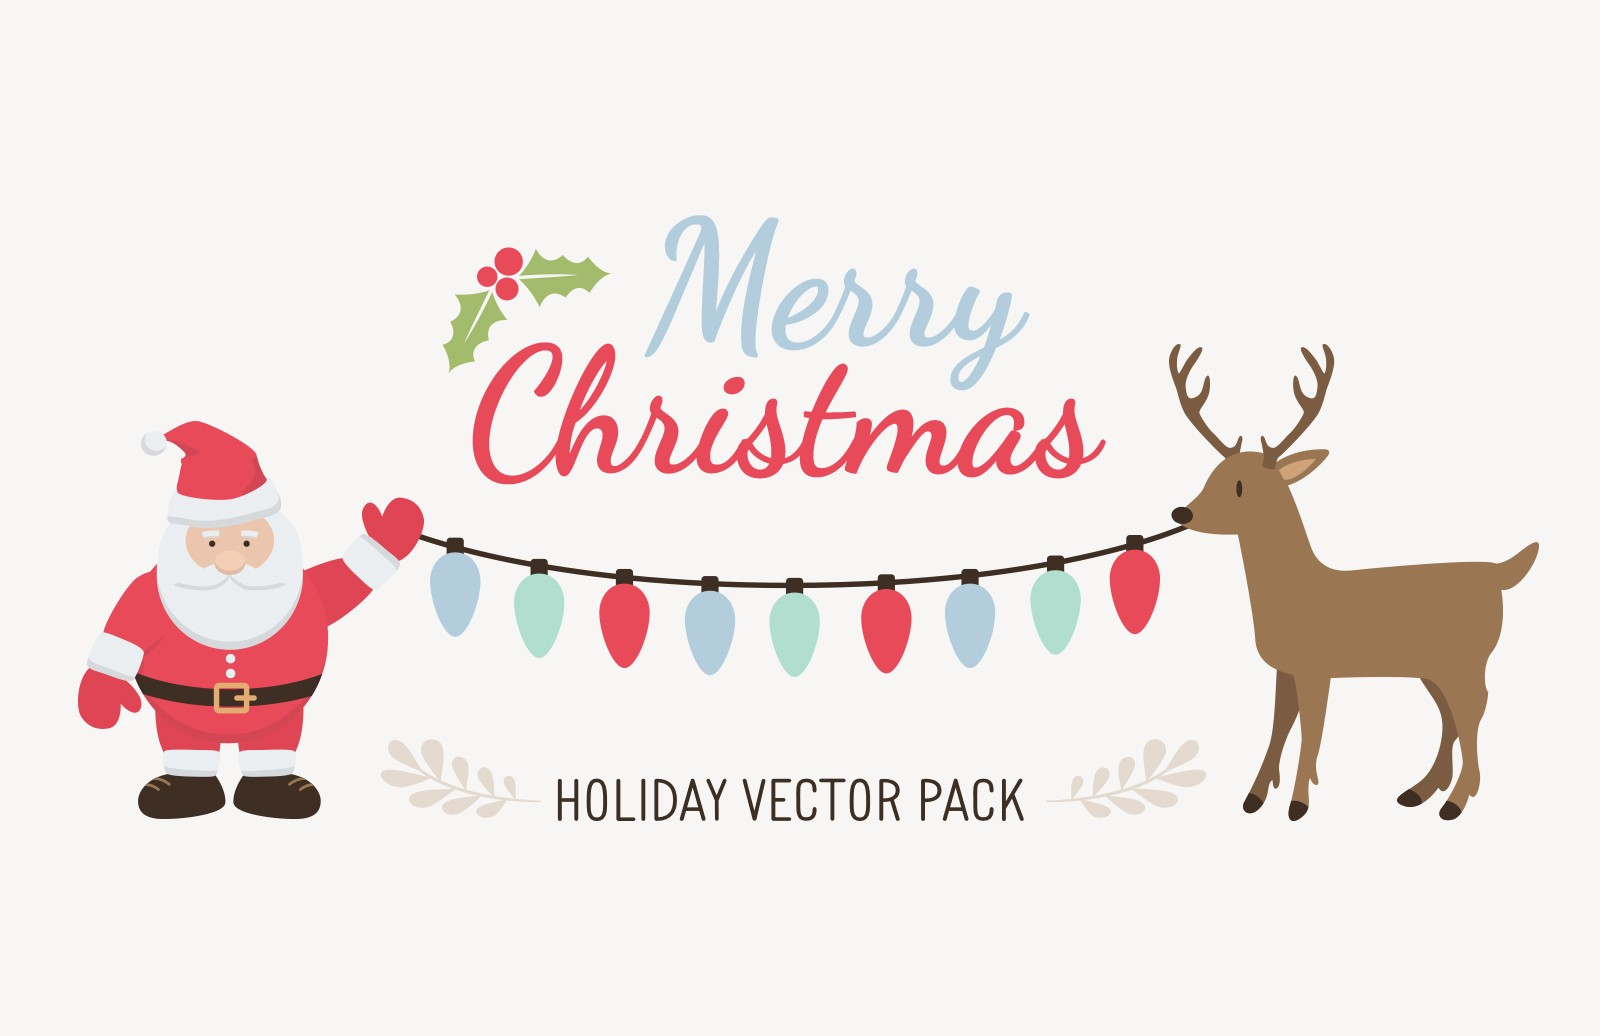 Holiday Vector Pack 1